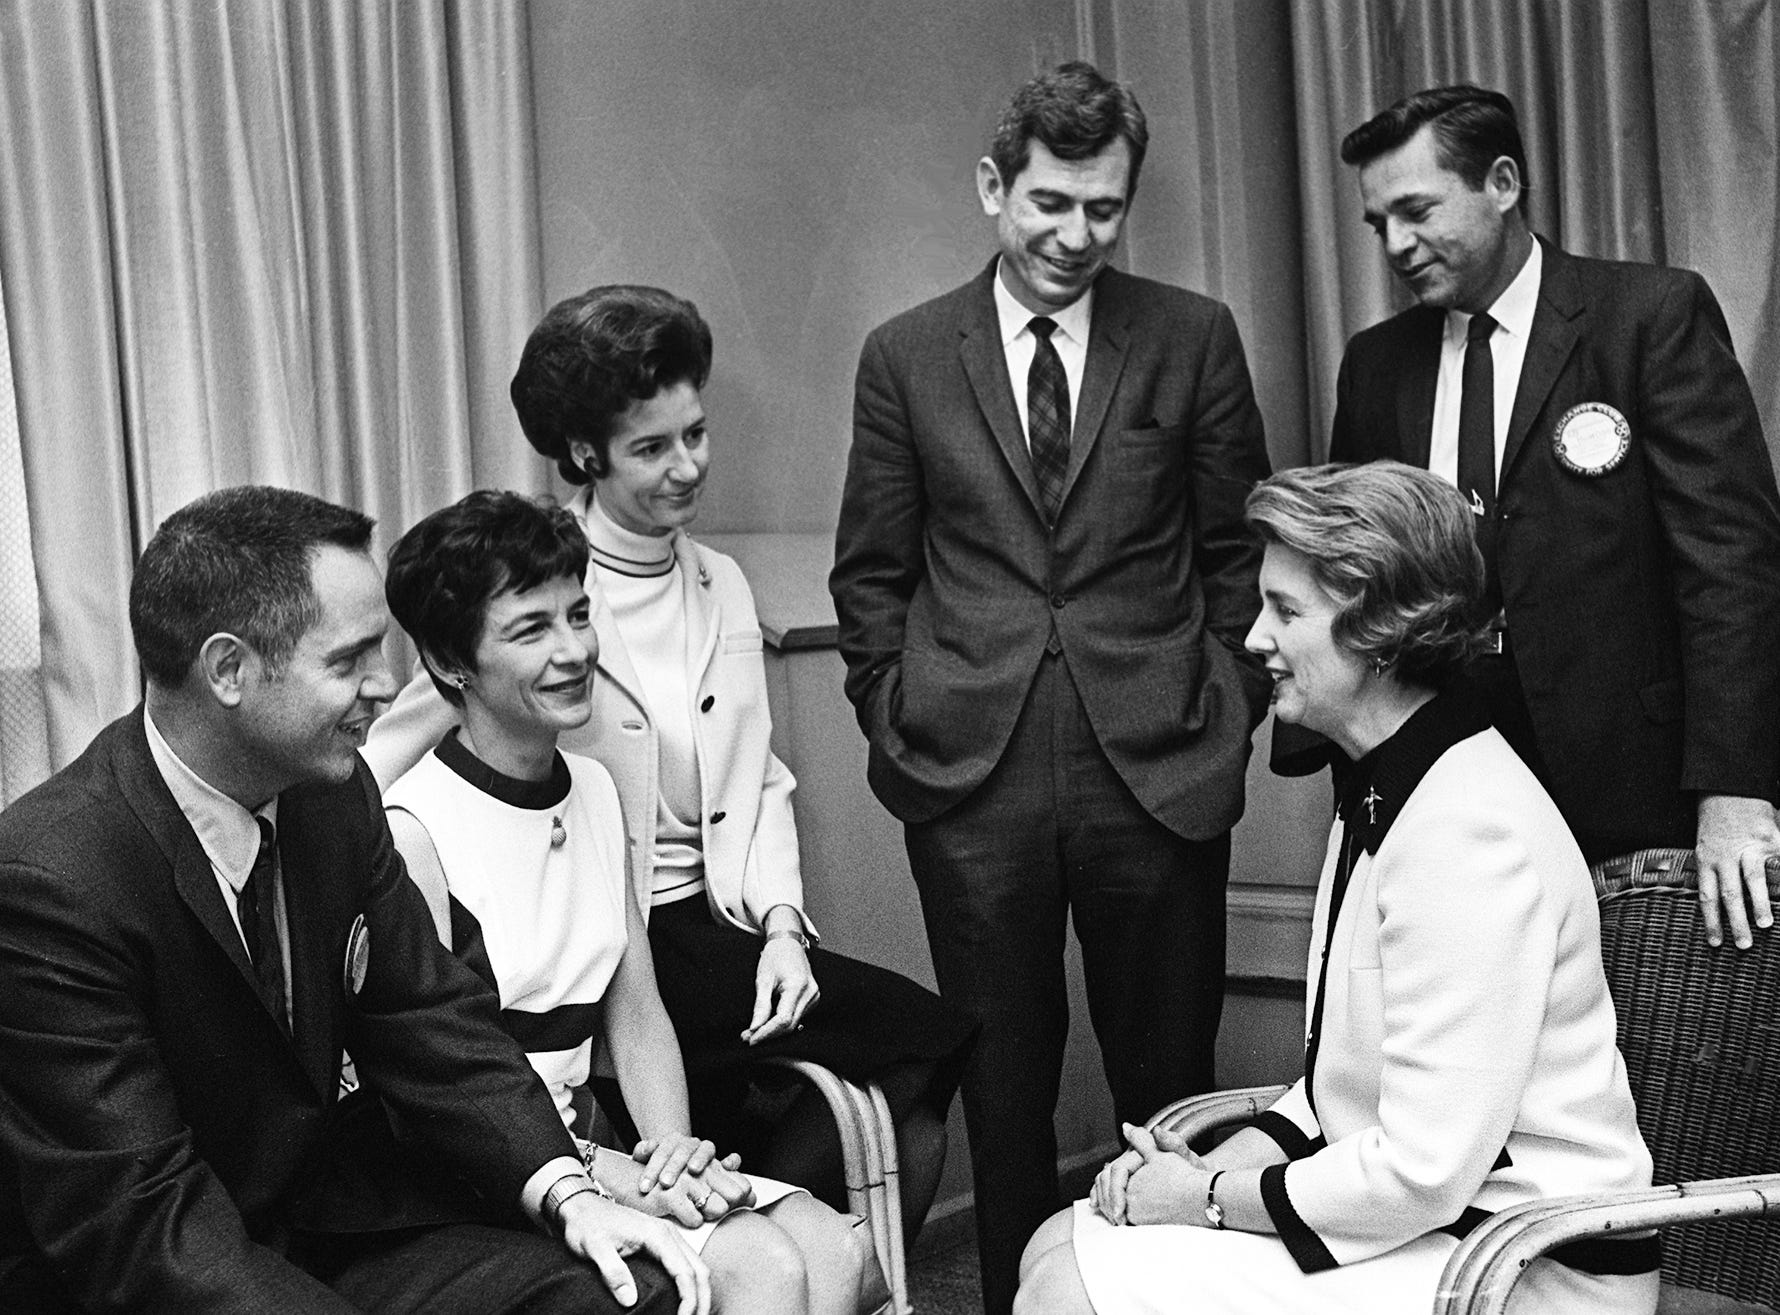 Celebrating Valentine week, the Hermitage Hotel is the scene of a luncheon given by members of the Exchange Club on Feb. 11, 1969. Enjoying the event are Mr. and Mrs. Charles Warfield, seated left, Mrs. Webb Follin, Mrs. Ed DeMoss, Dr. Nat Winston, standing left, and Webb Follin.